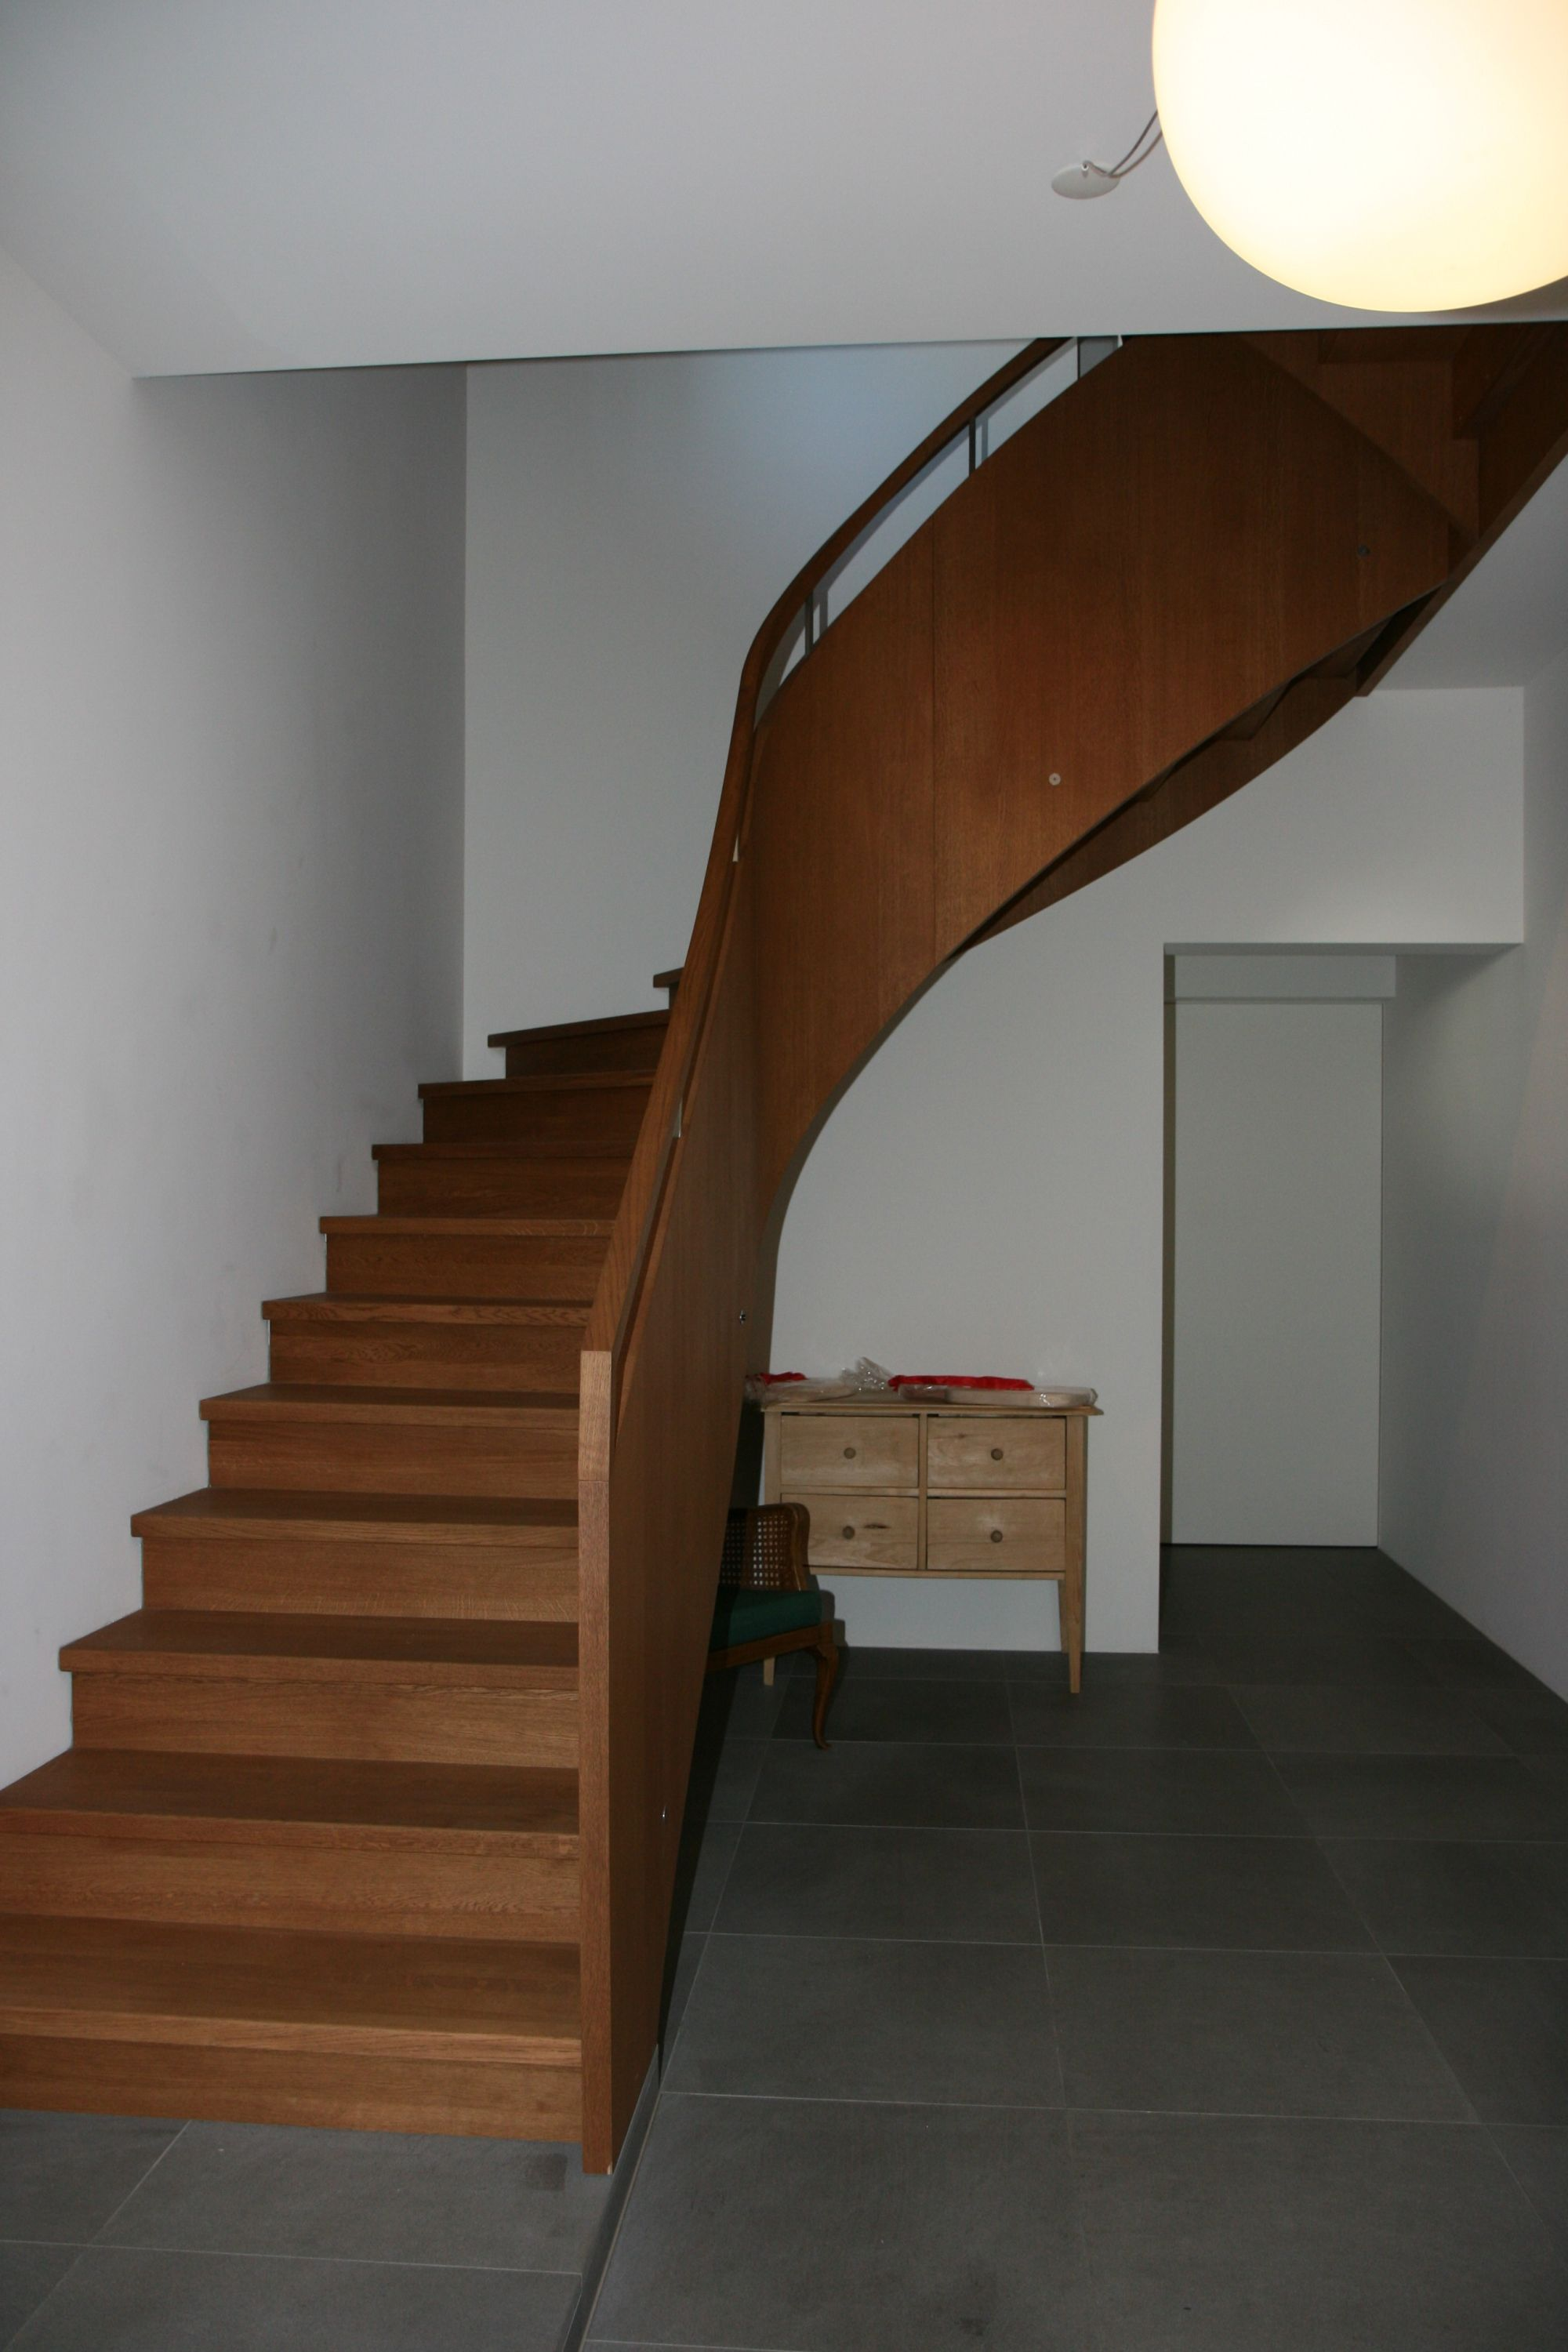 Stair Image 164